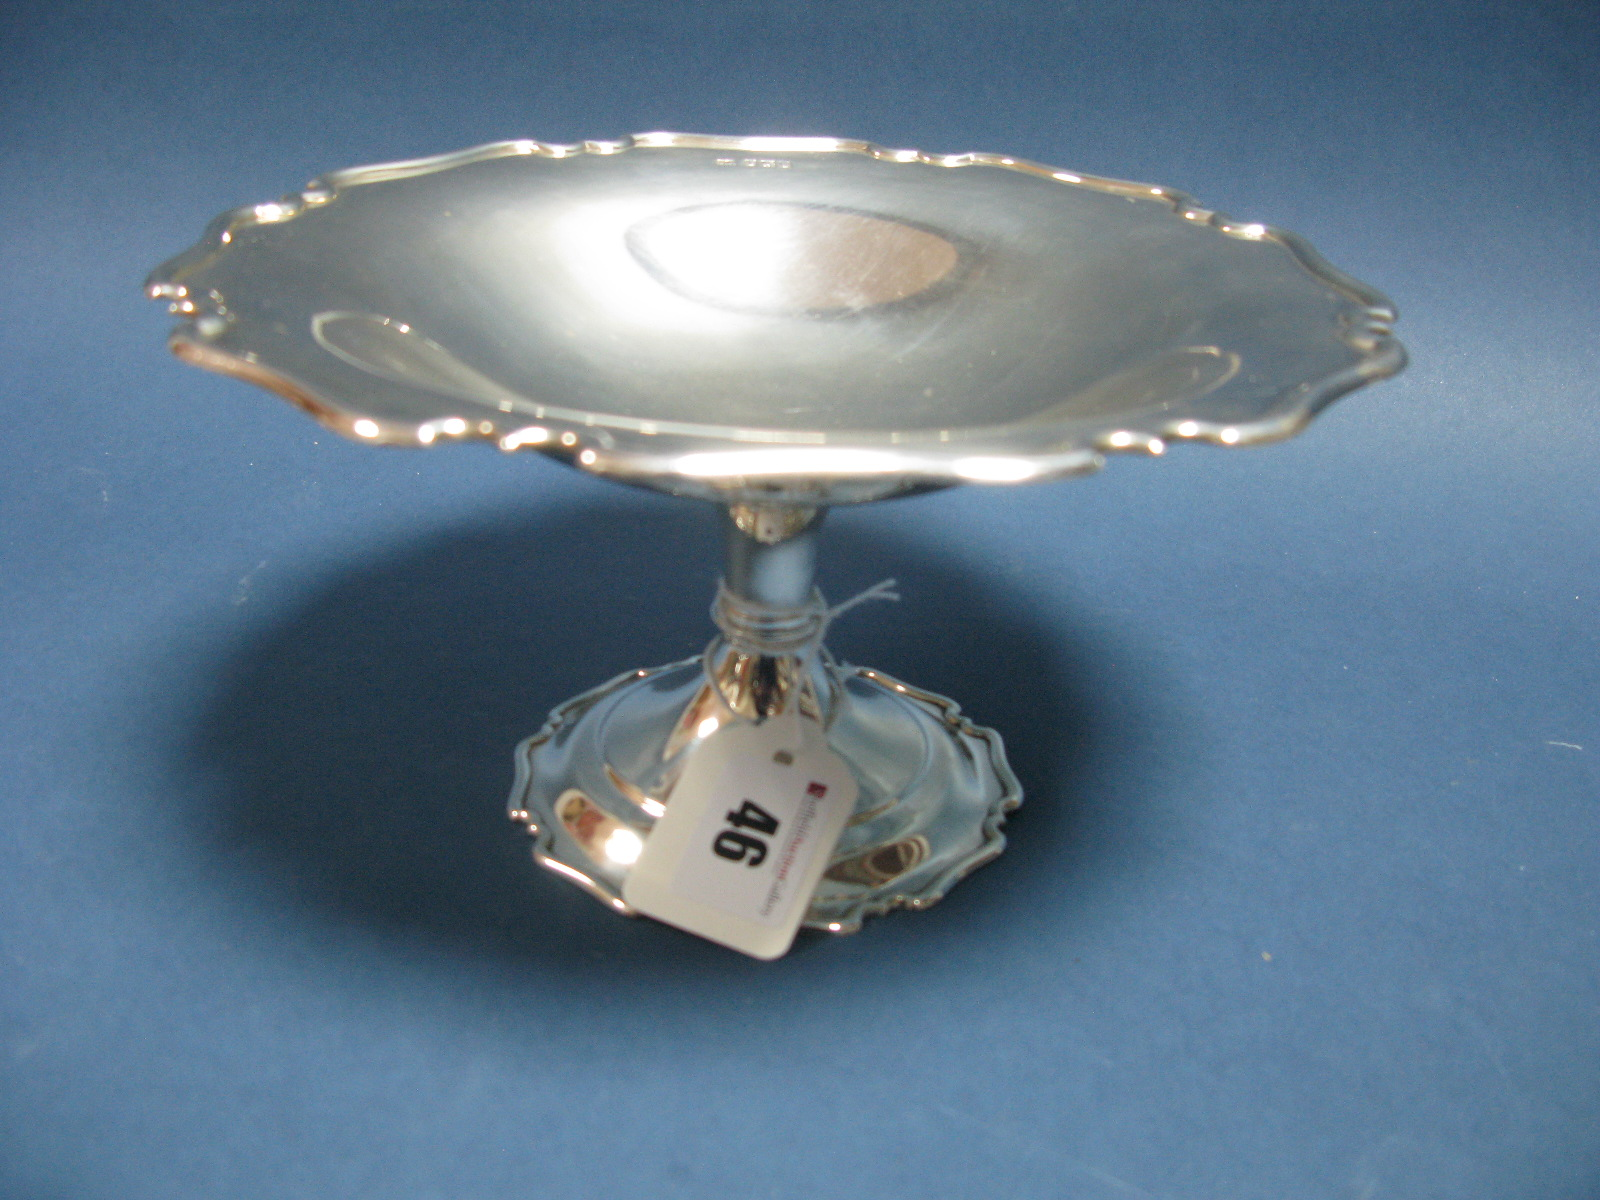 Lot 46 - A Hallmarked Silver Pedestal Dish, Atkin Bros, Sheffield 1921, of shaped circular form, on knopped